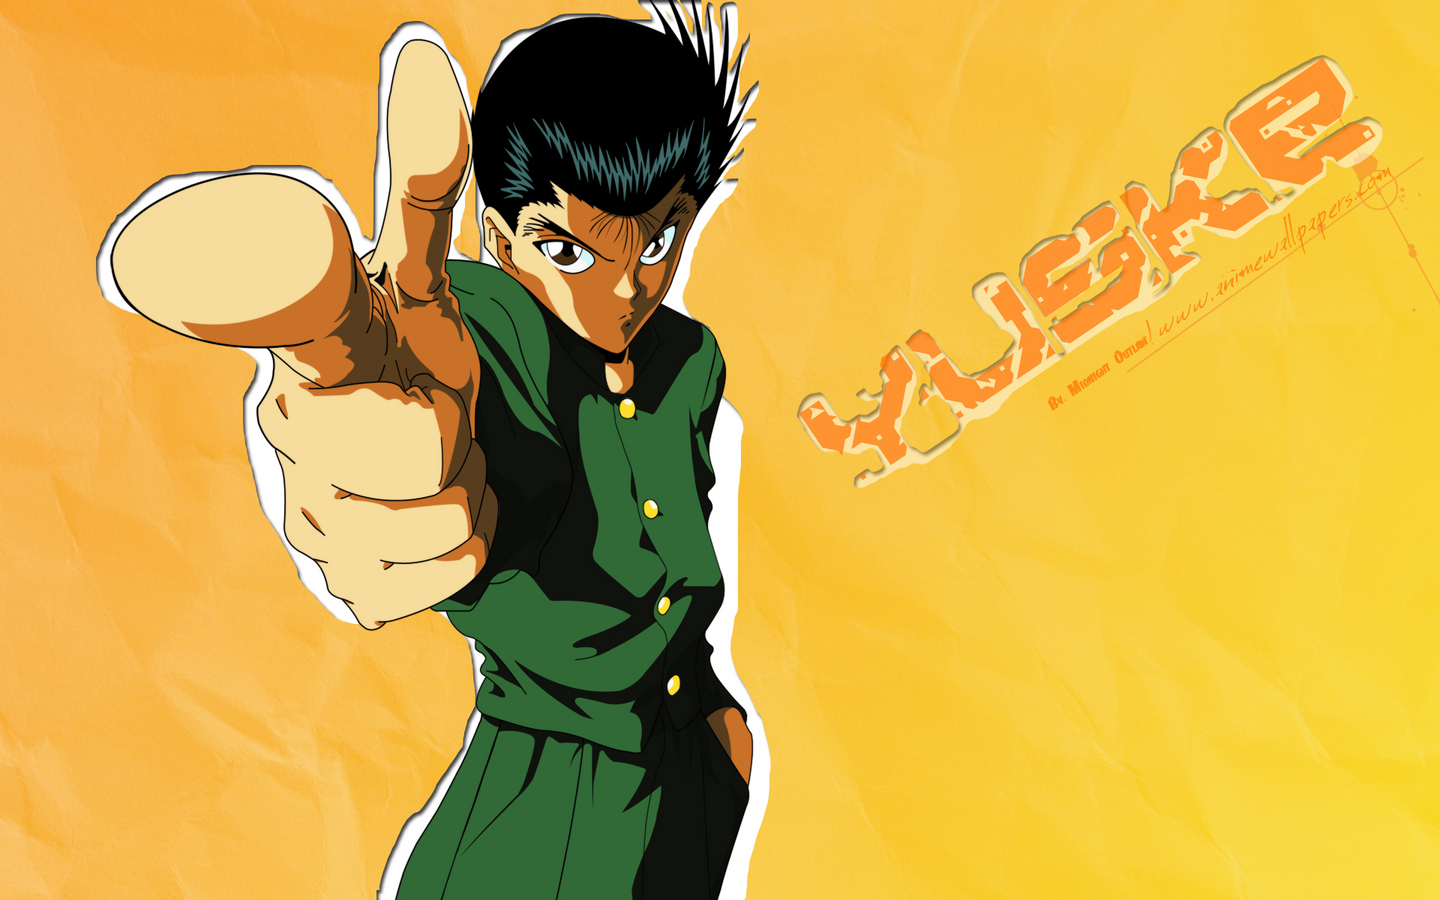 Yuu Yuu Hakusho Anime Wallpaper # 5